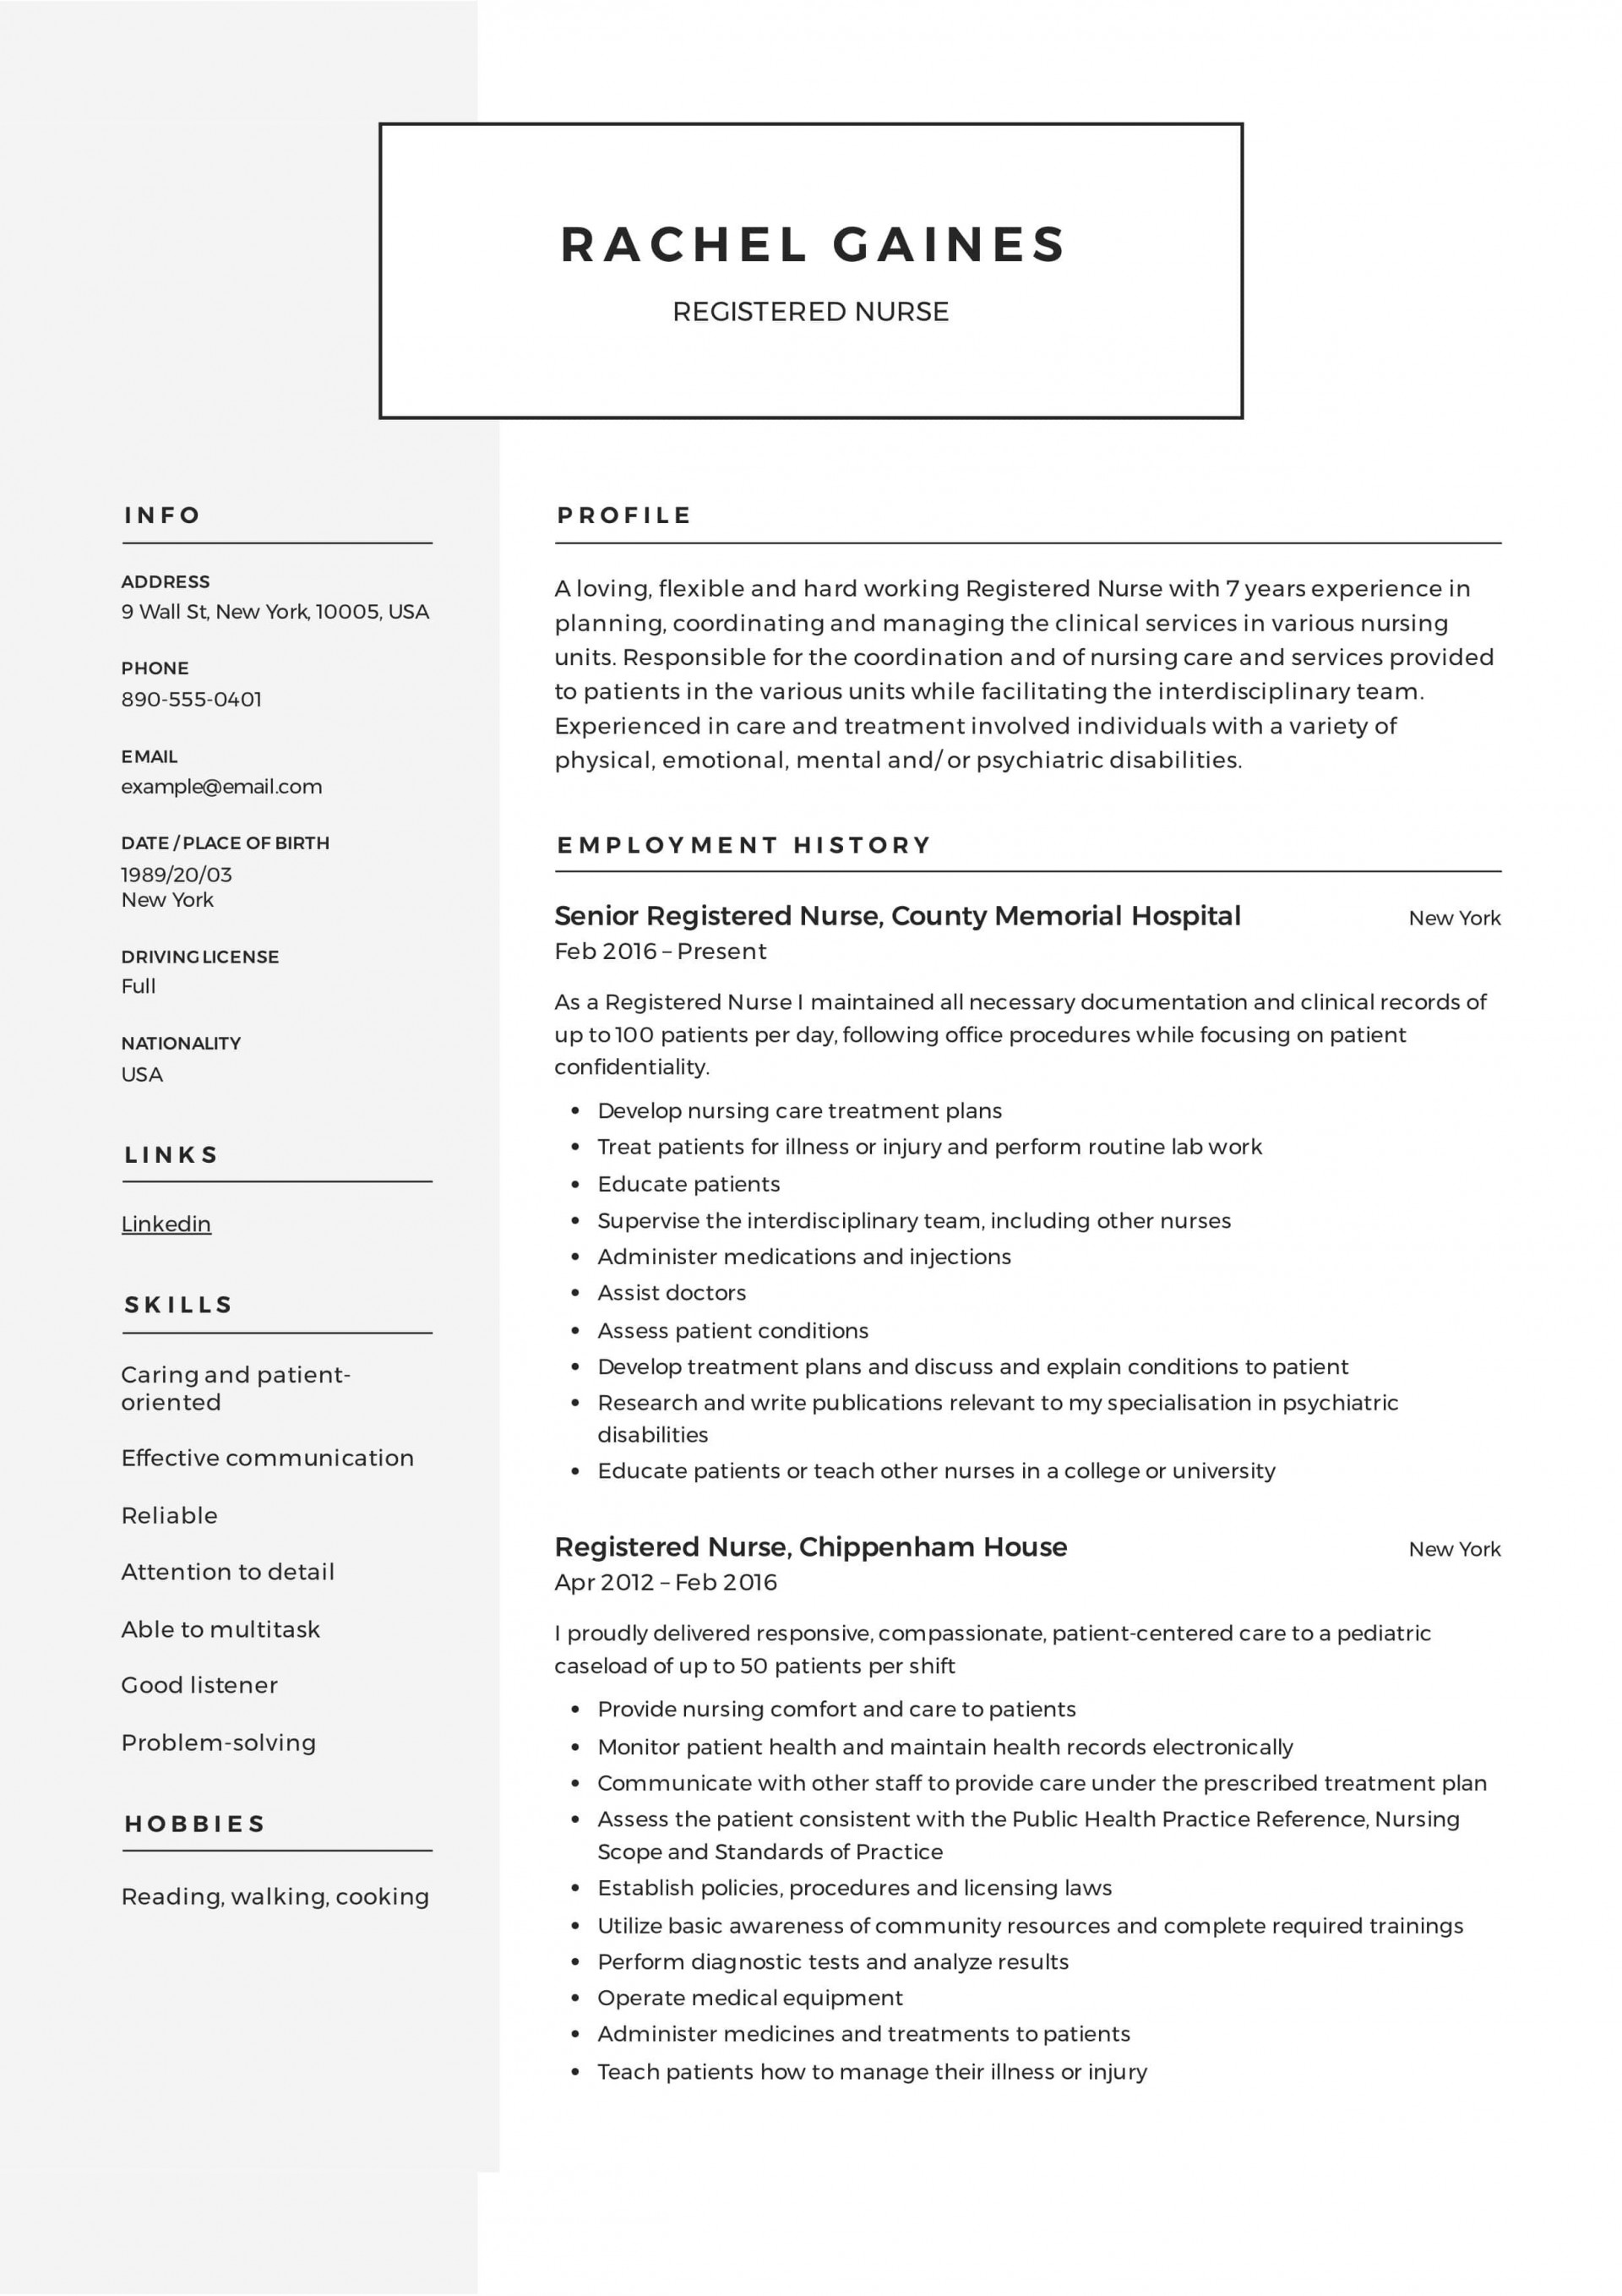 007 Breathtaking Resume Template For Nurse High Def  Sample Nursing Assistant With No Experience Rn' Free1920